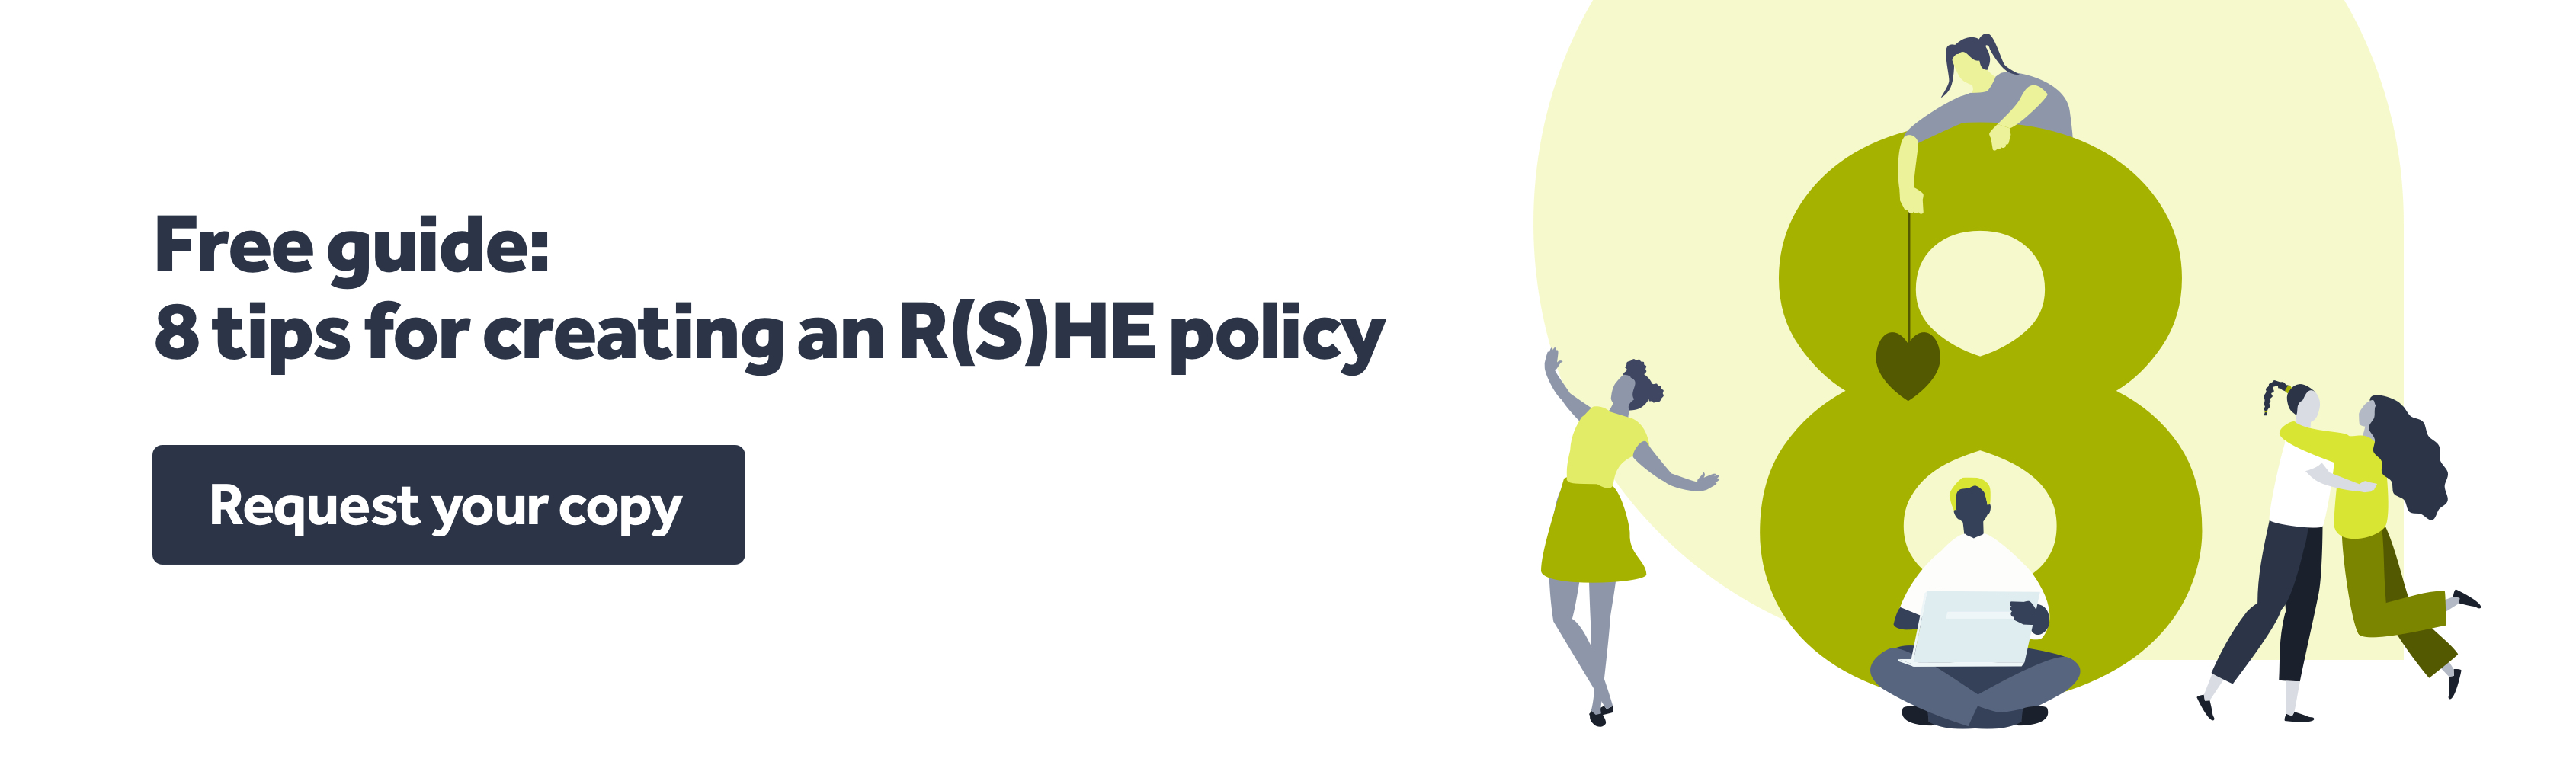 RSHE policy